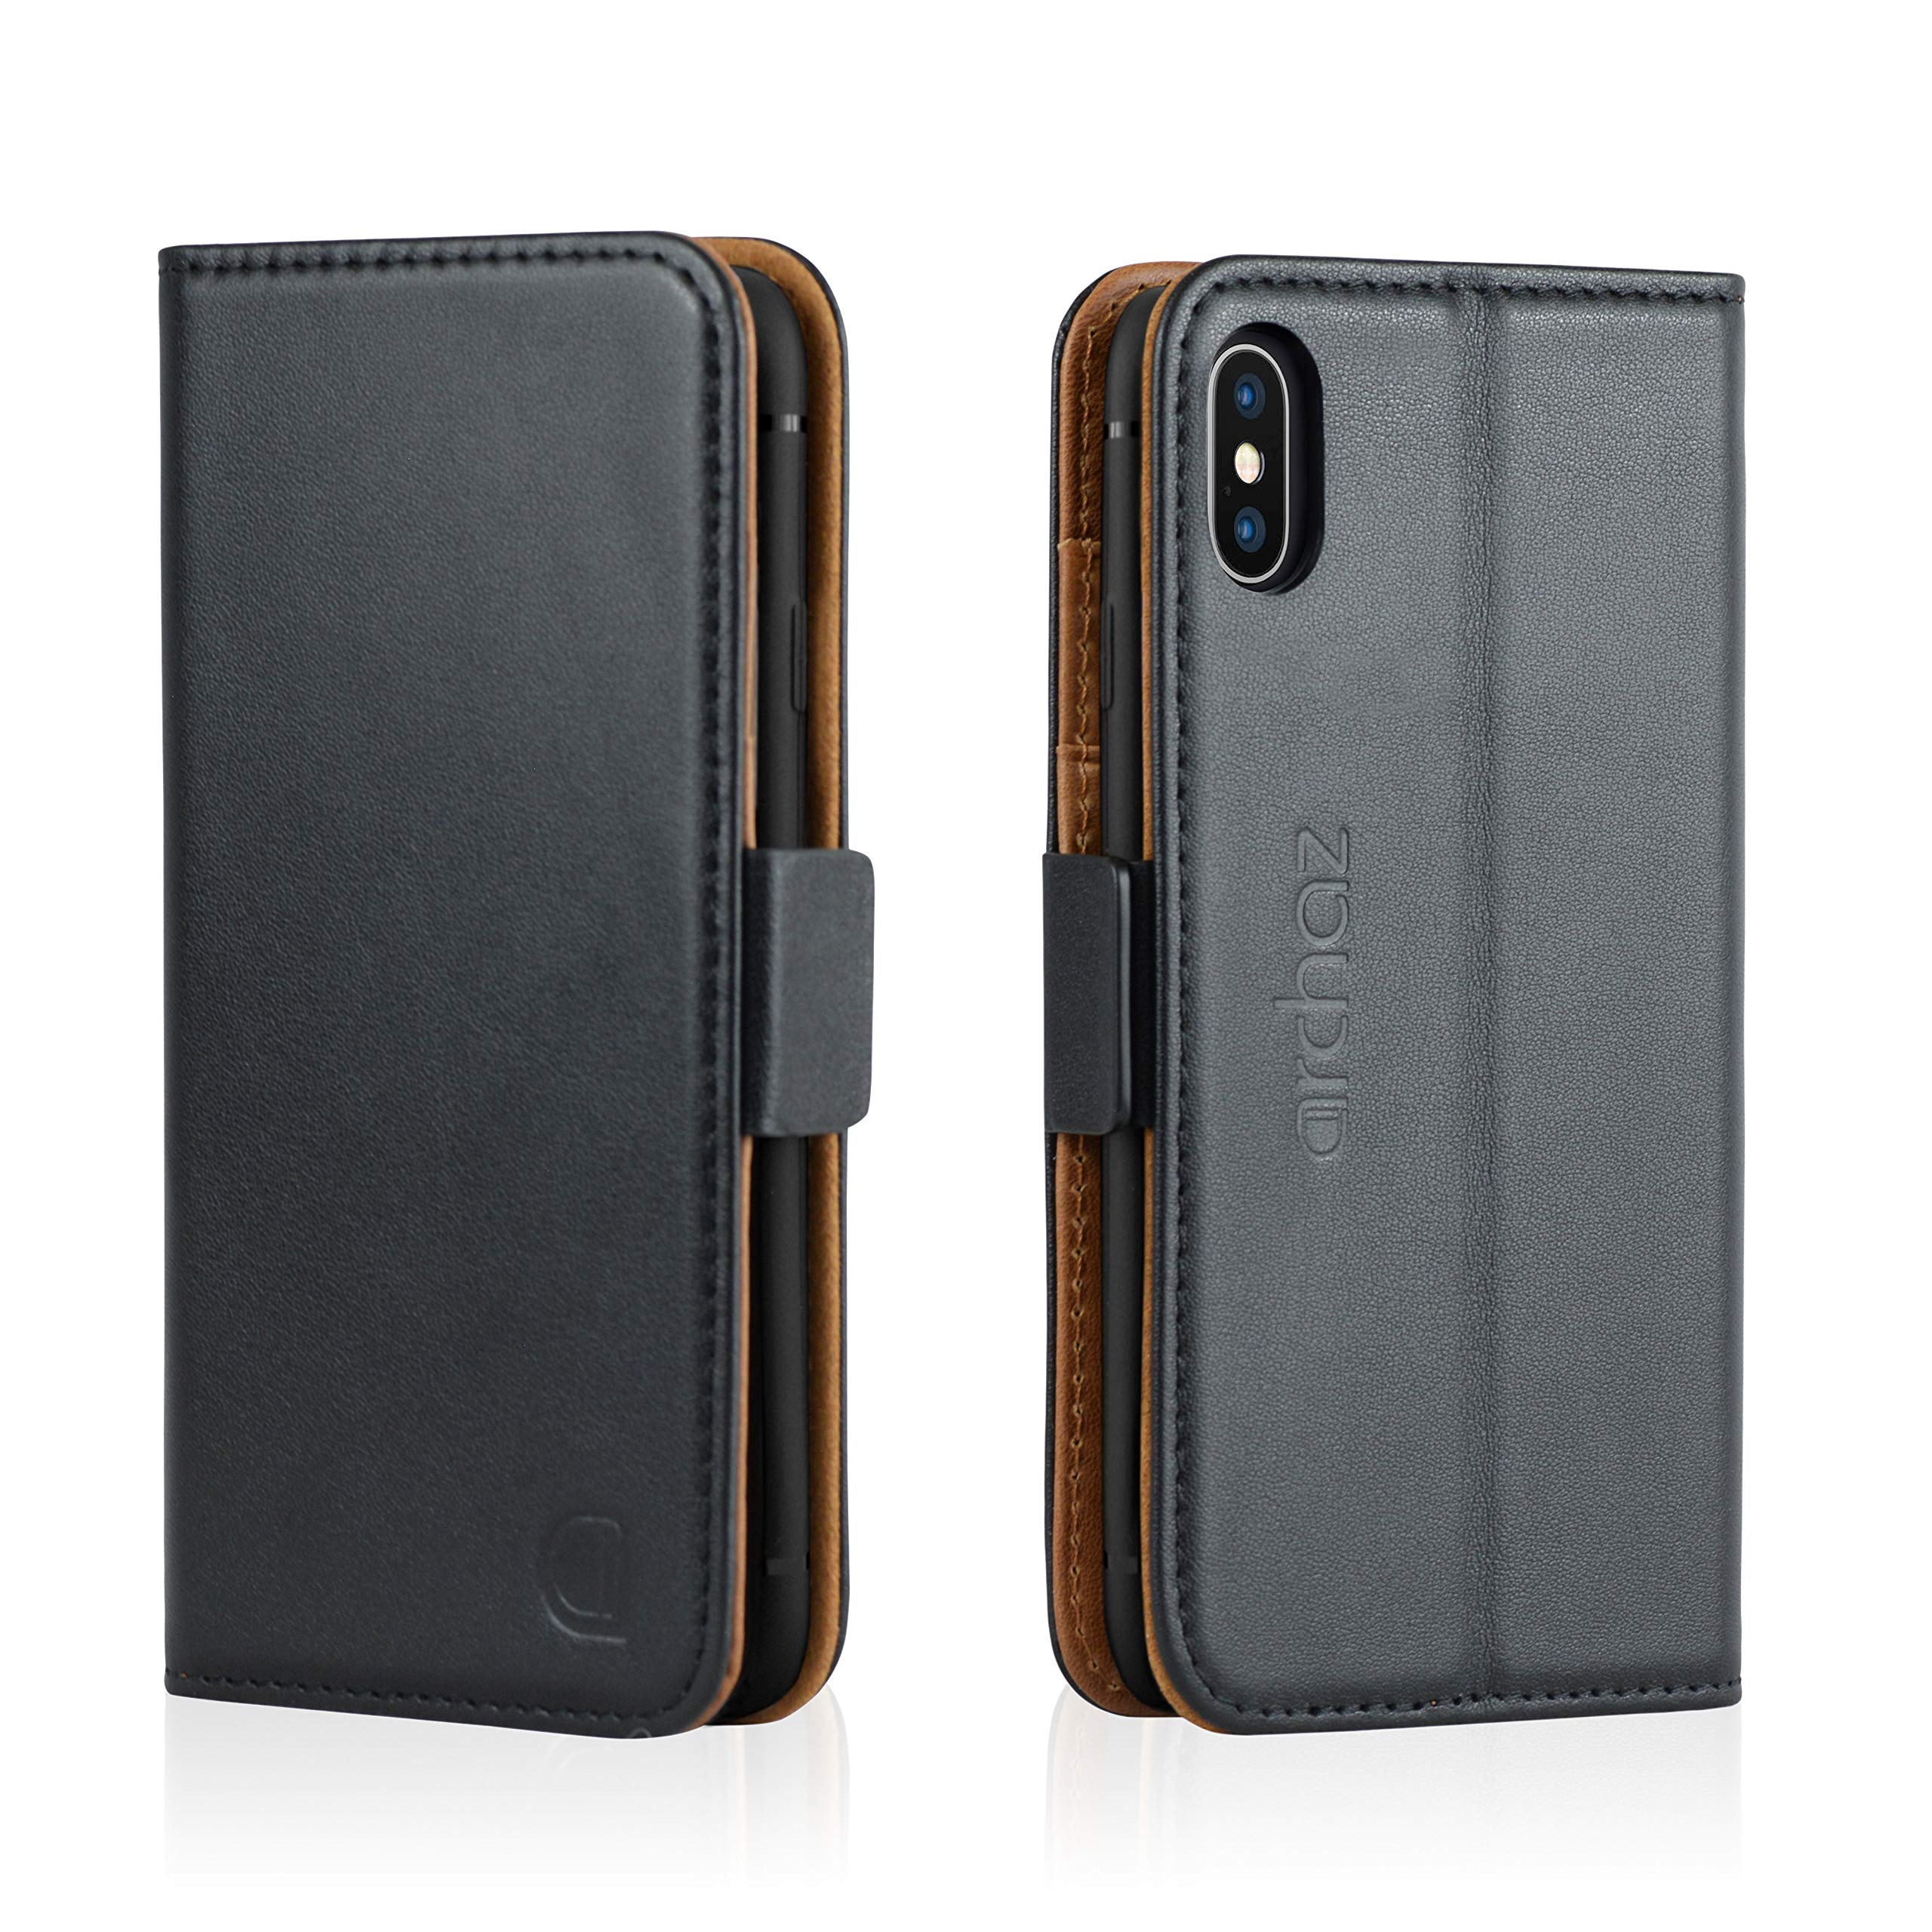 archaz iPhone X/iPhone Xs Wallet Case - Premium Leather Case for iPhone X/Xs - Flip Cover with Magnetic Latch Closure - Adjustable Viewing Stand - Compatible with Wireless Charger (Black-Brown) by archaz